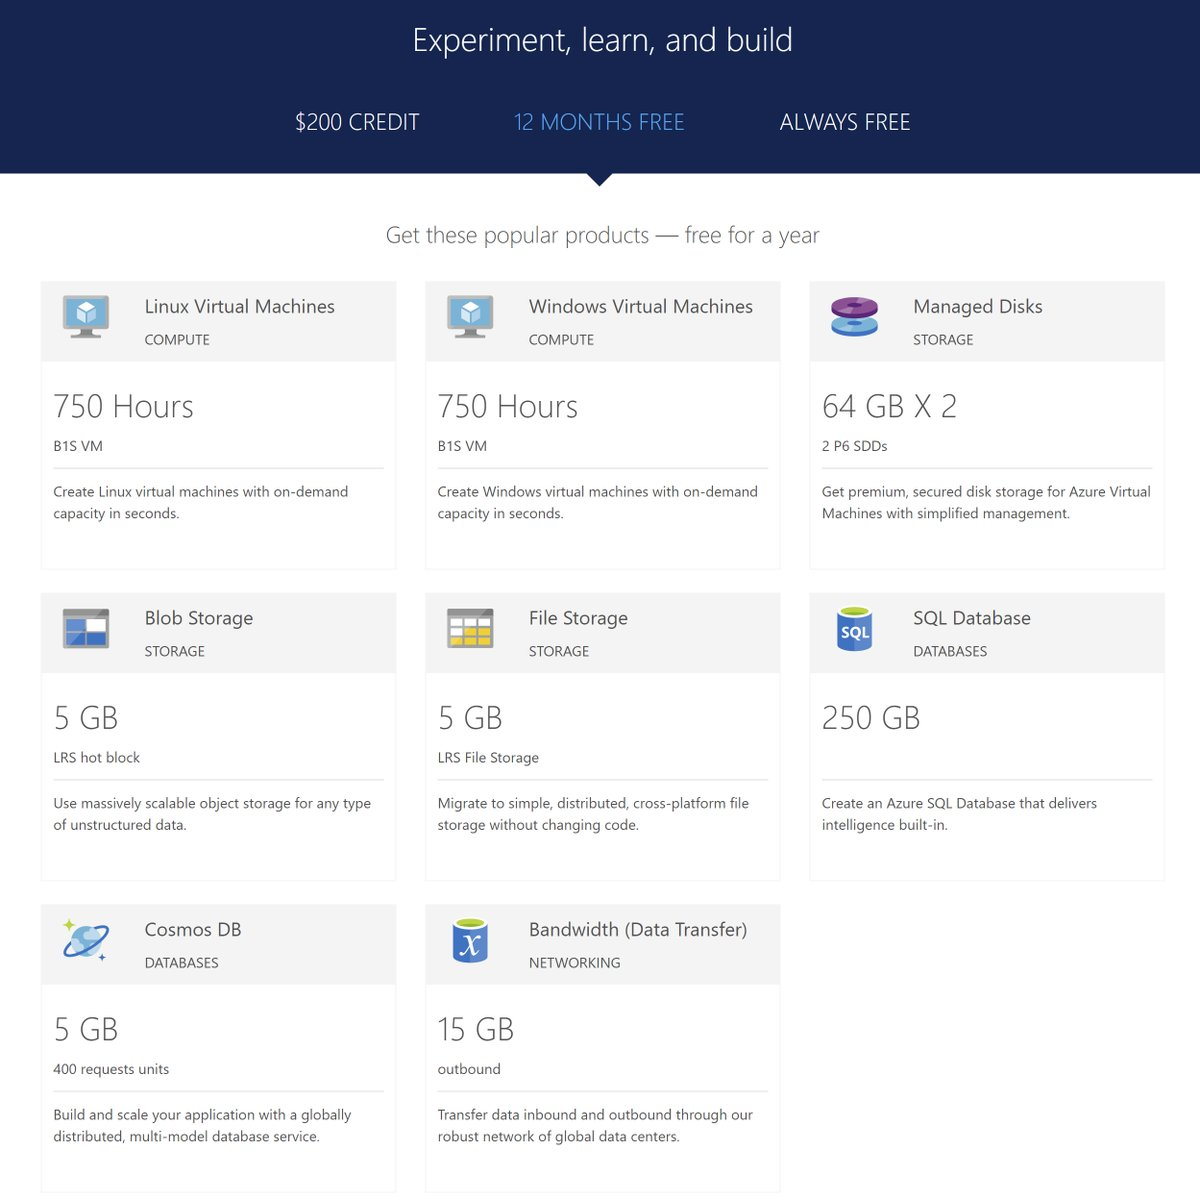 Now get 12 months of free access to popular Azure services 1